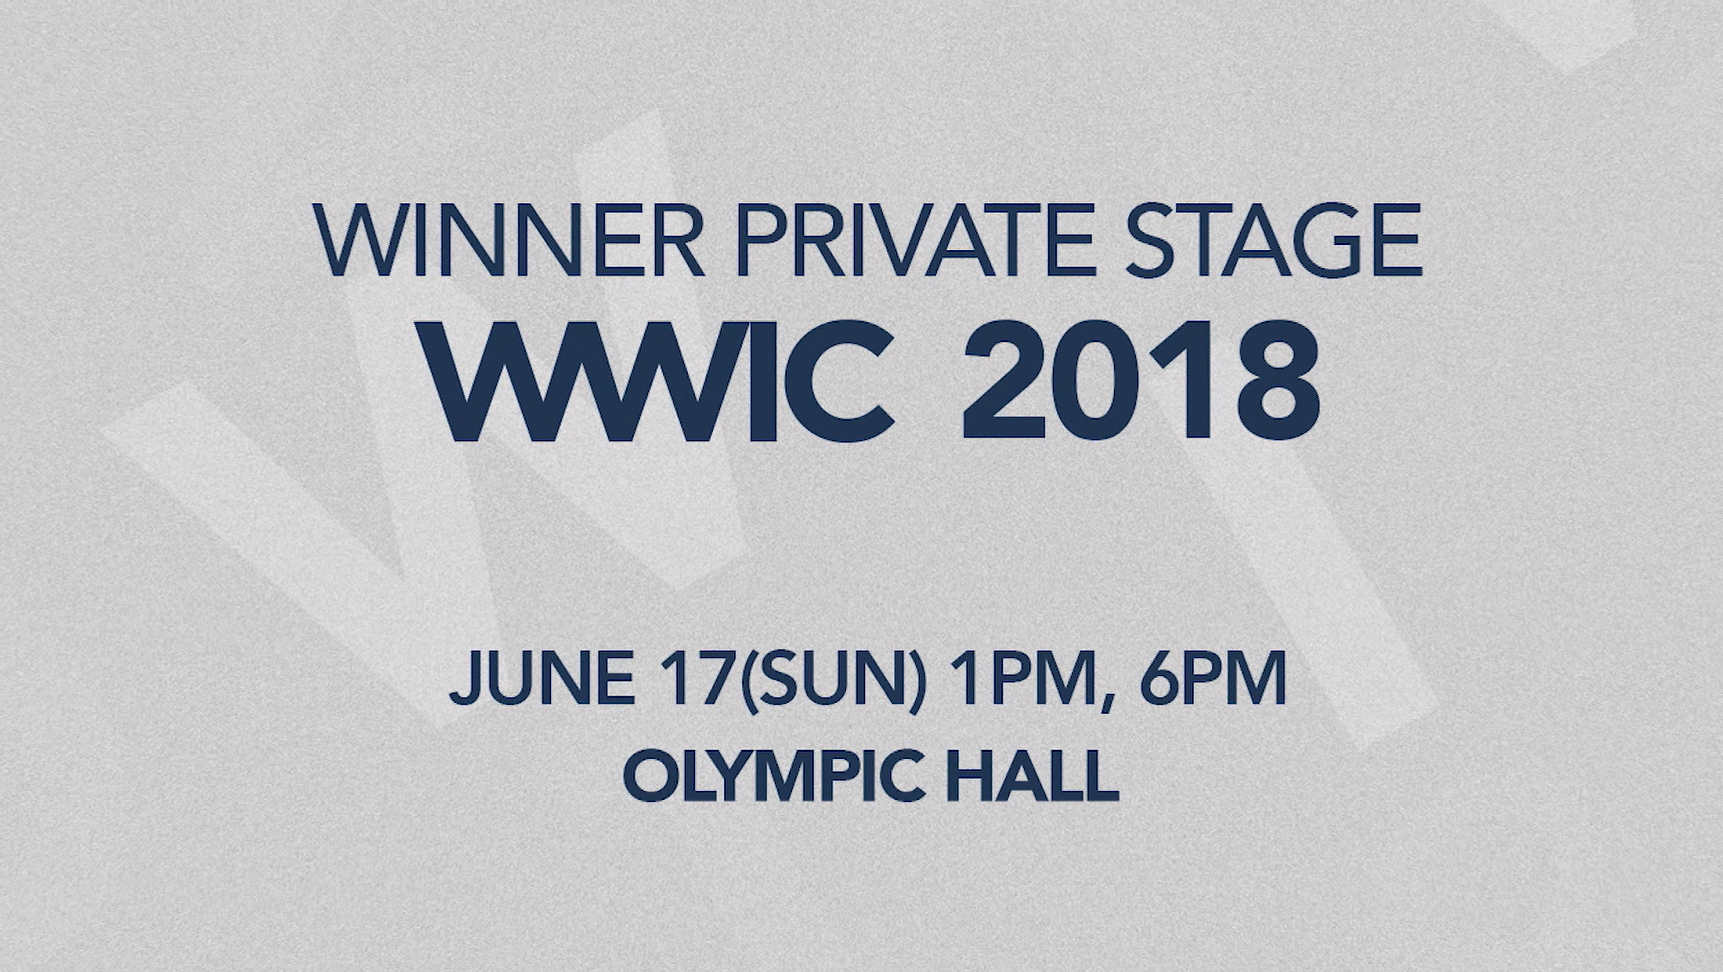 WINNER - PRIVATE STAGE [WWIC 2018] SPOT #2